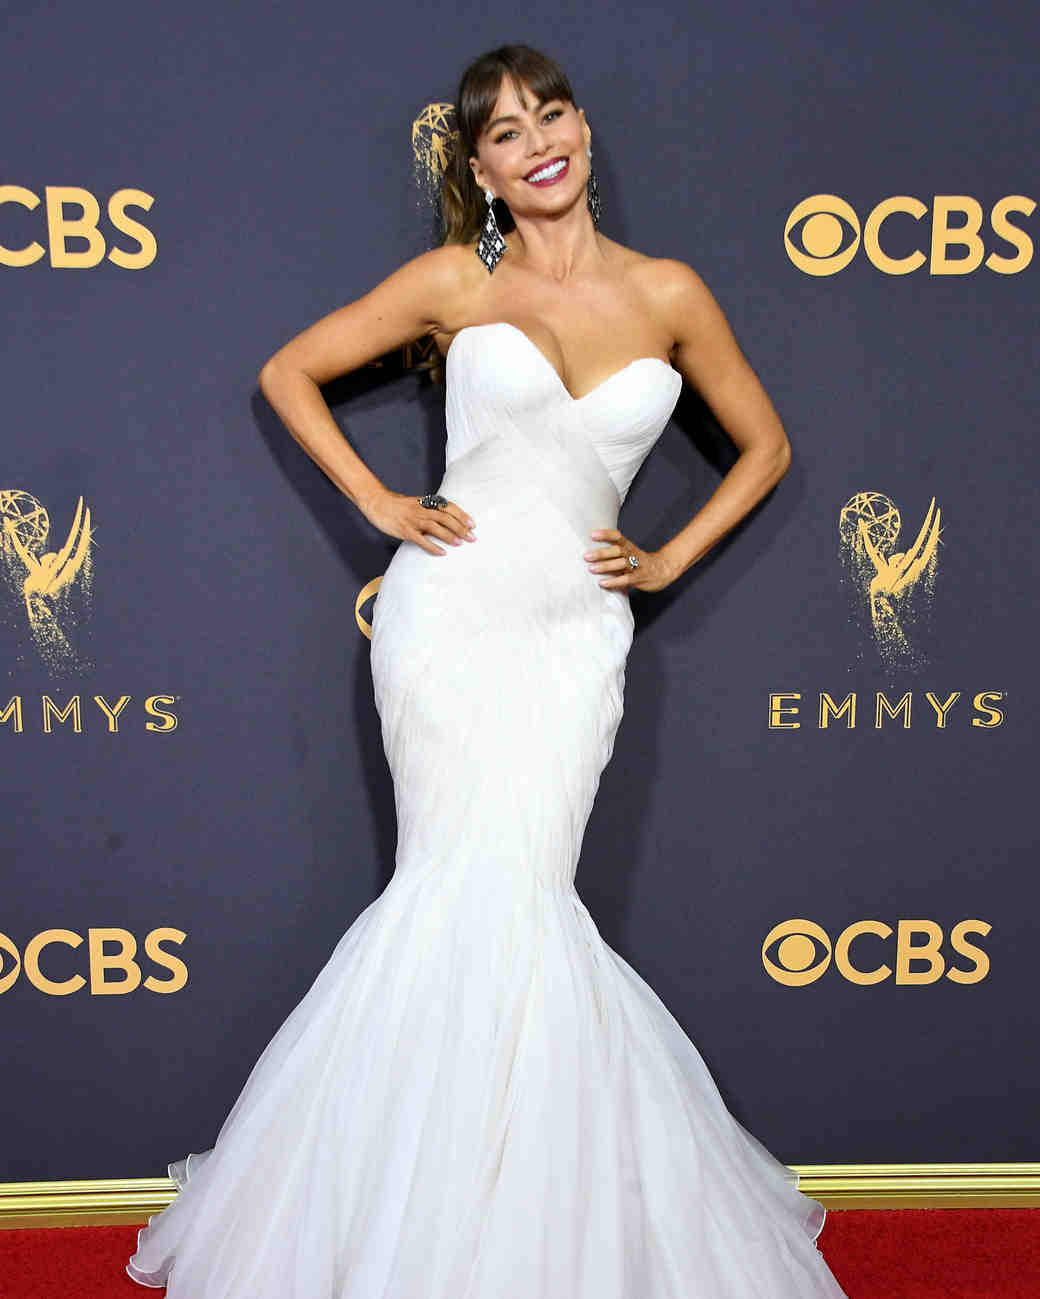 Emmys 2017: The Best Dresses to Inspire Brides-to-Be | Martha ...